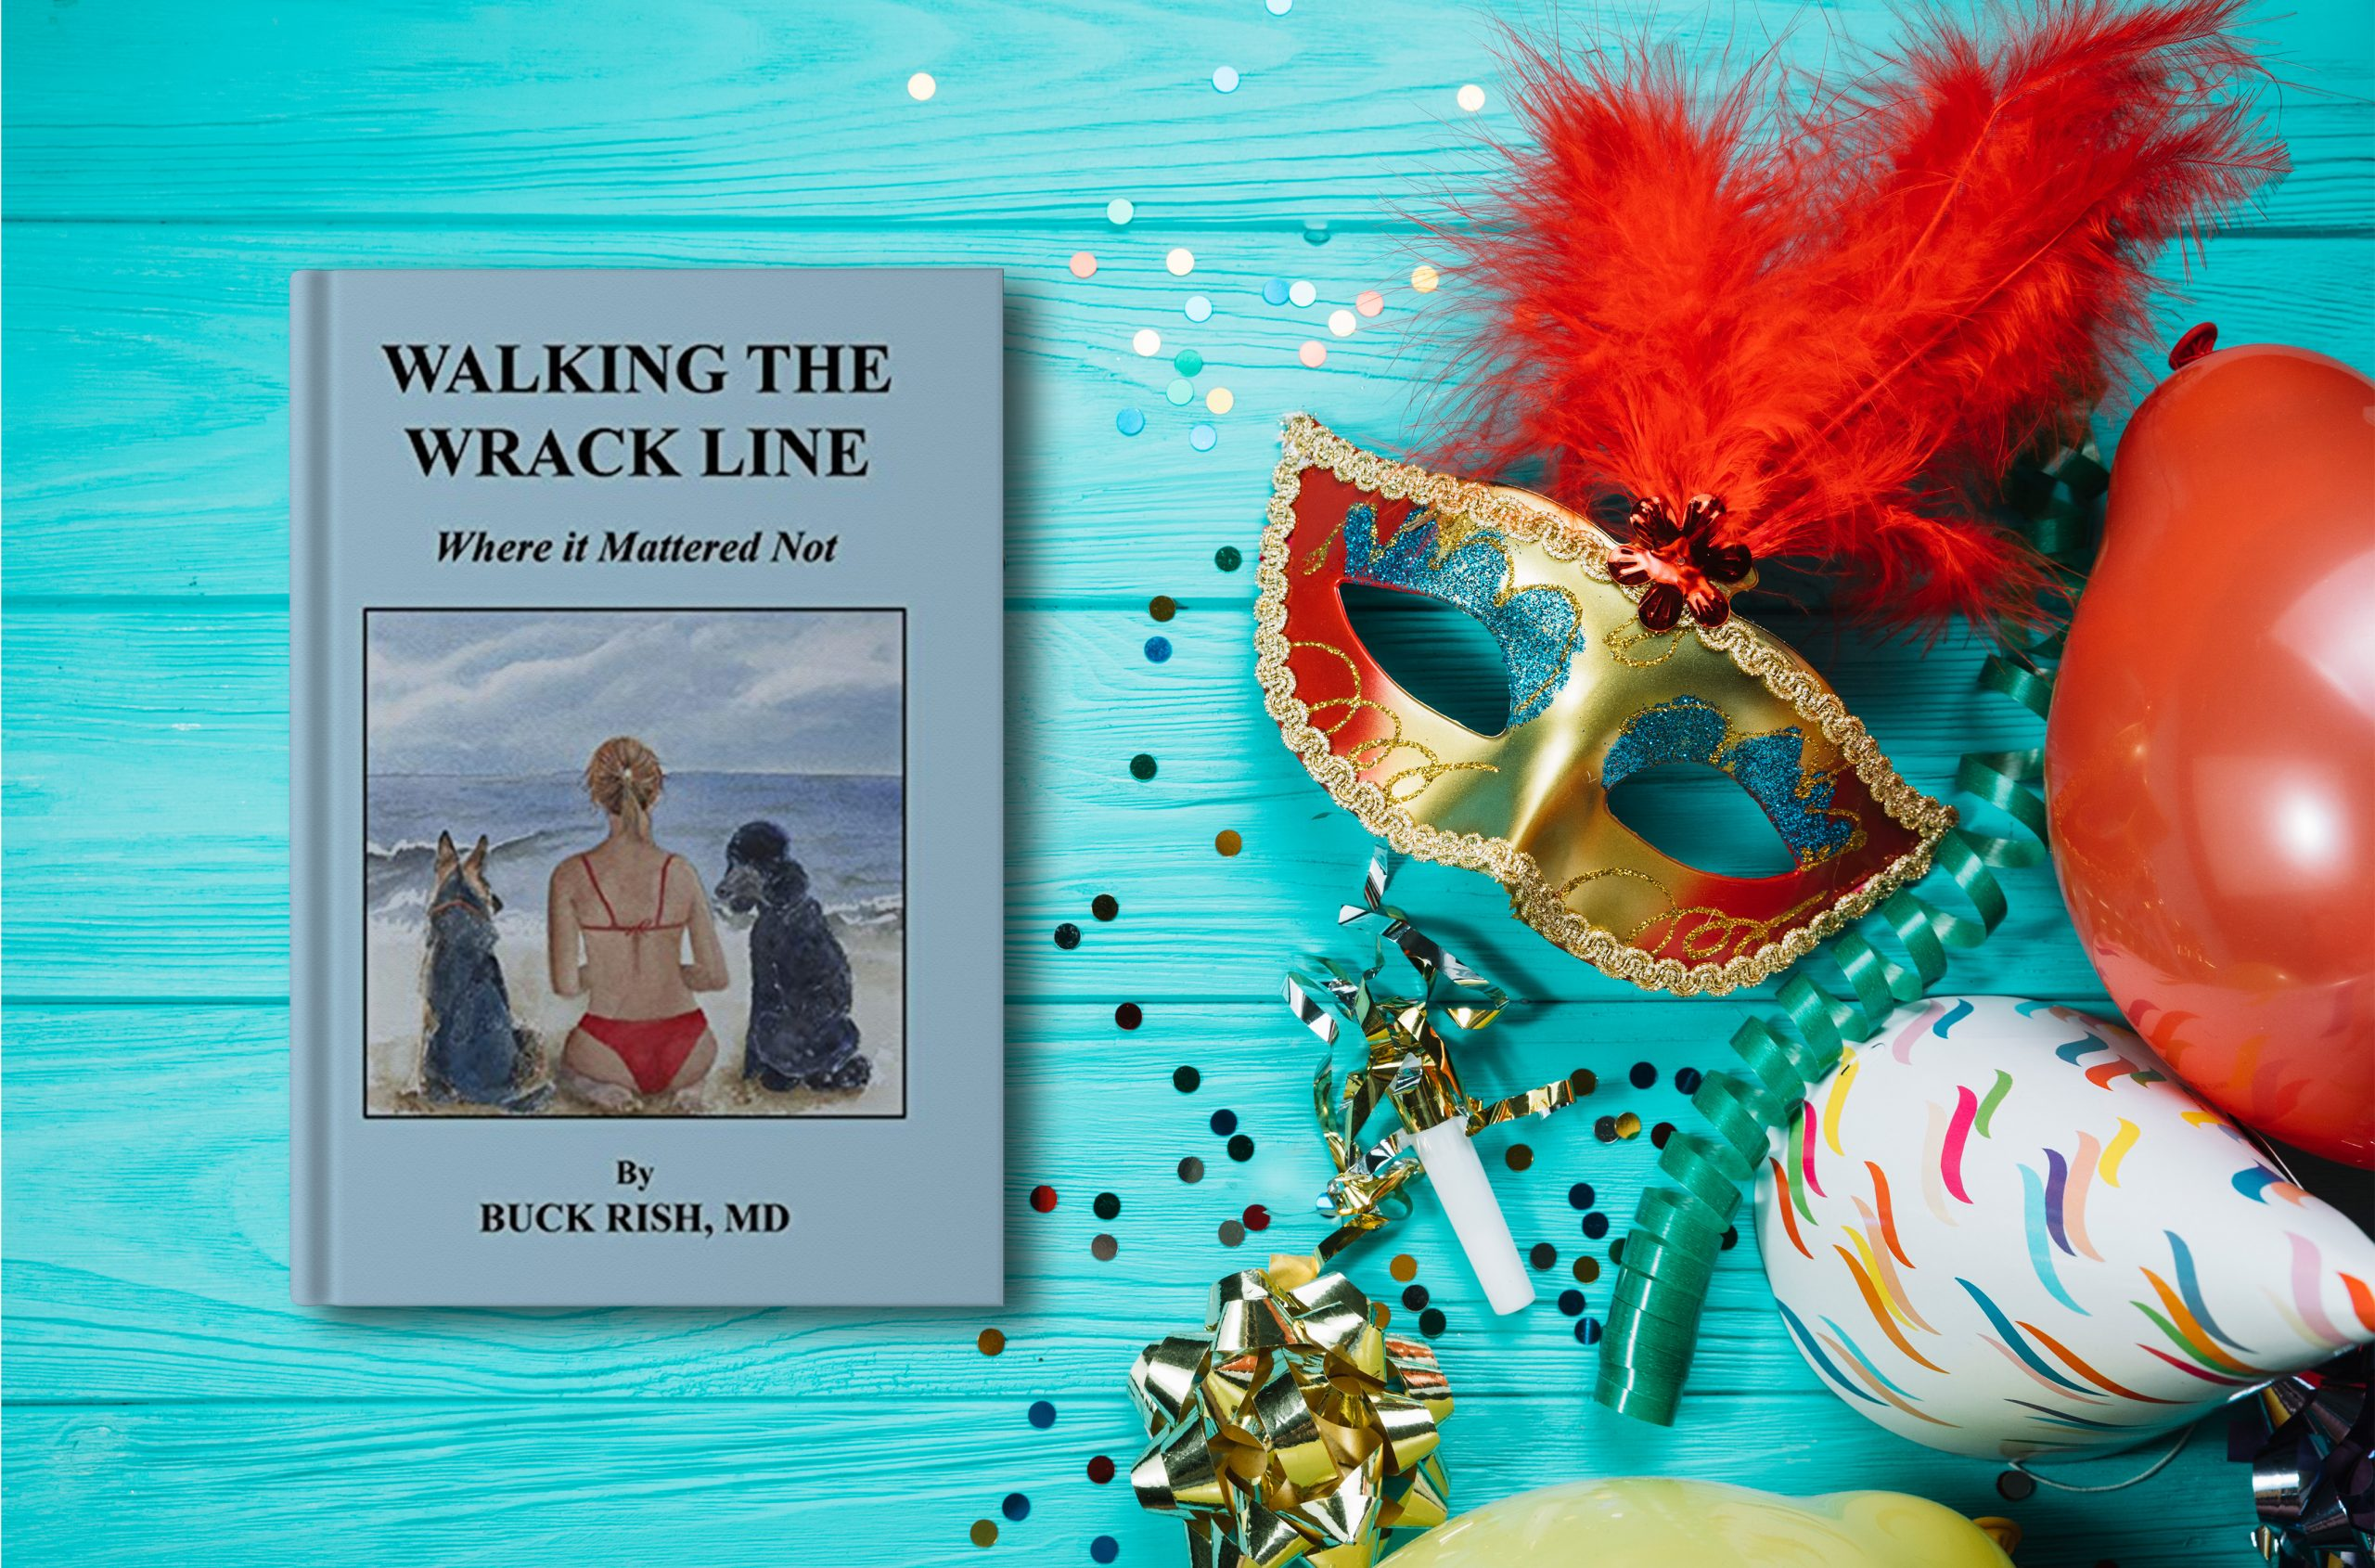 Book Review - Walking the Wreck Line by Buck Rish